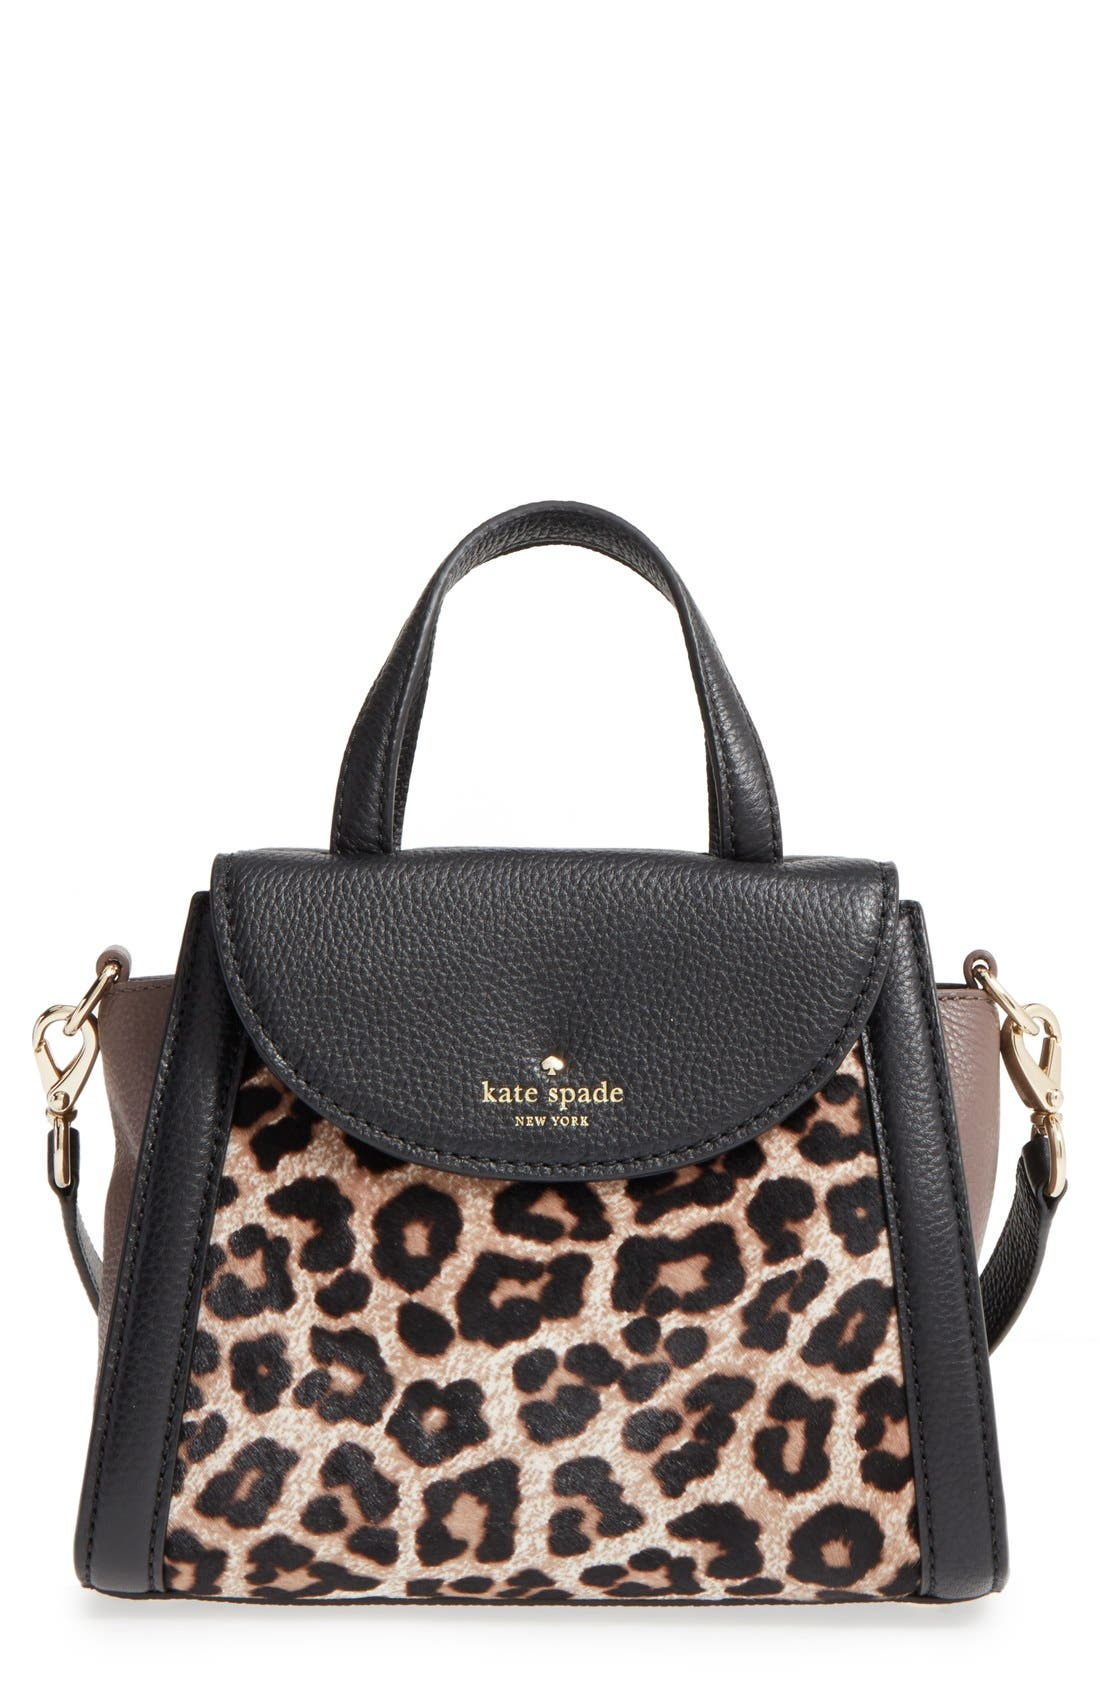 Alternate Image 1 Selected - kate spade new york 'cobble hill - small adrien' genuine calf hair satchel